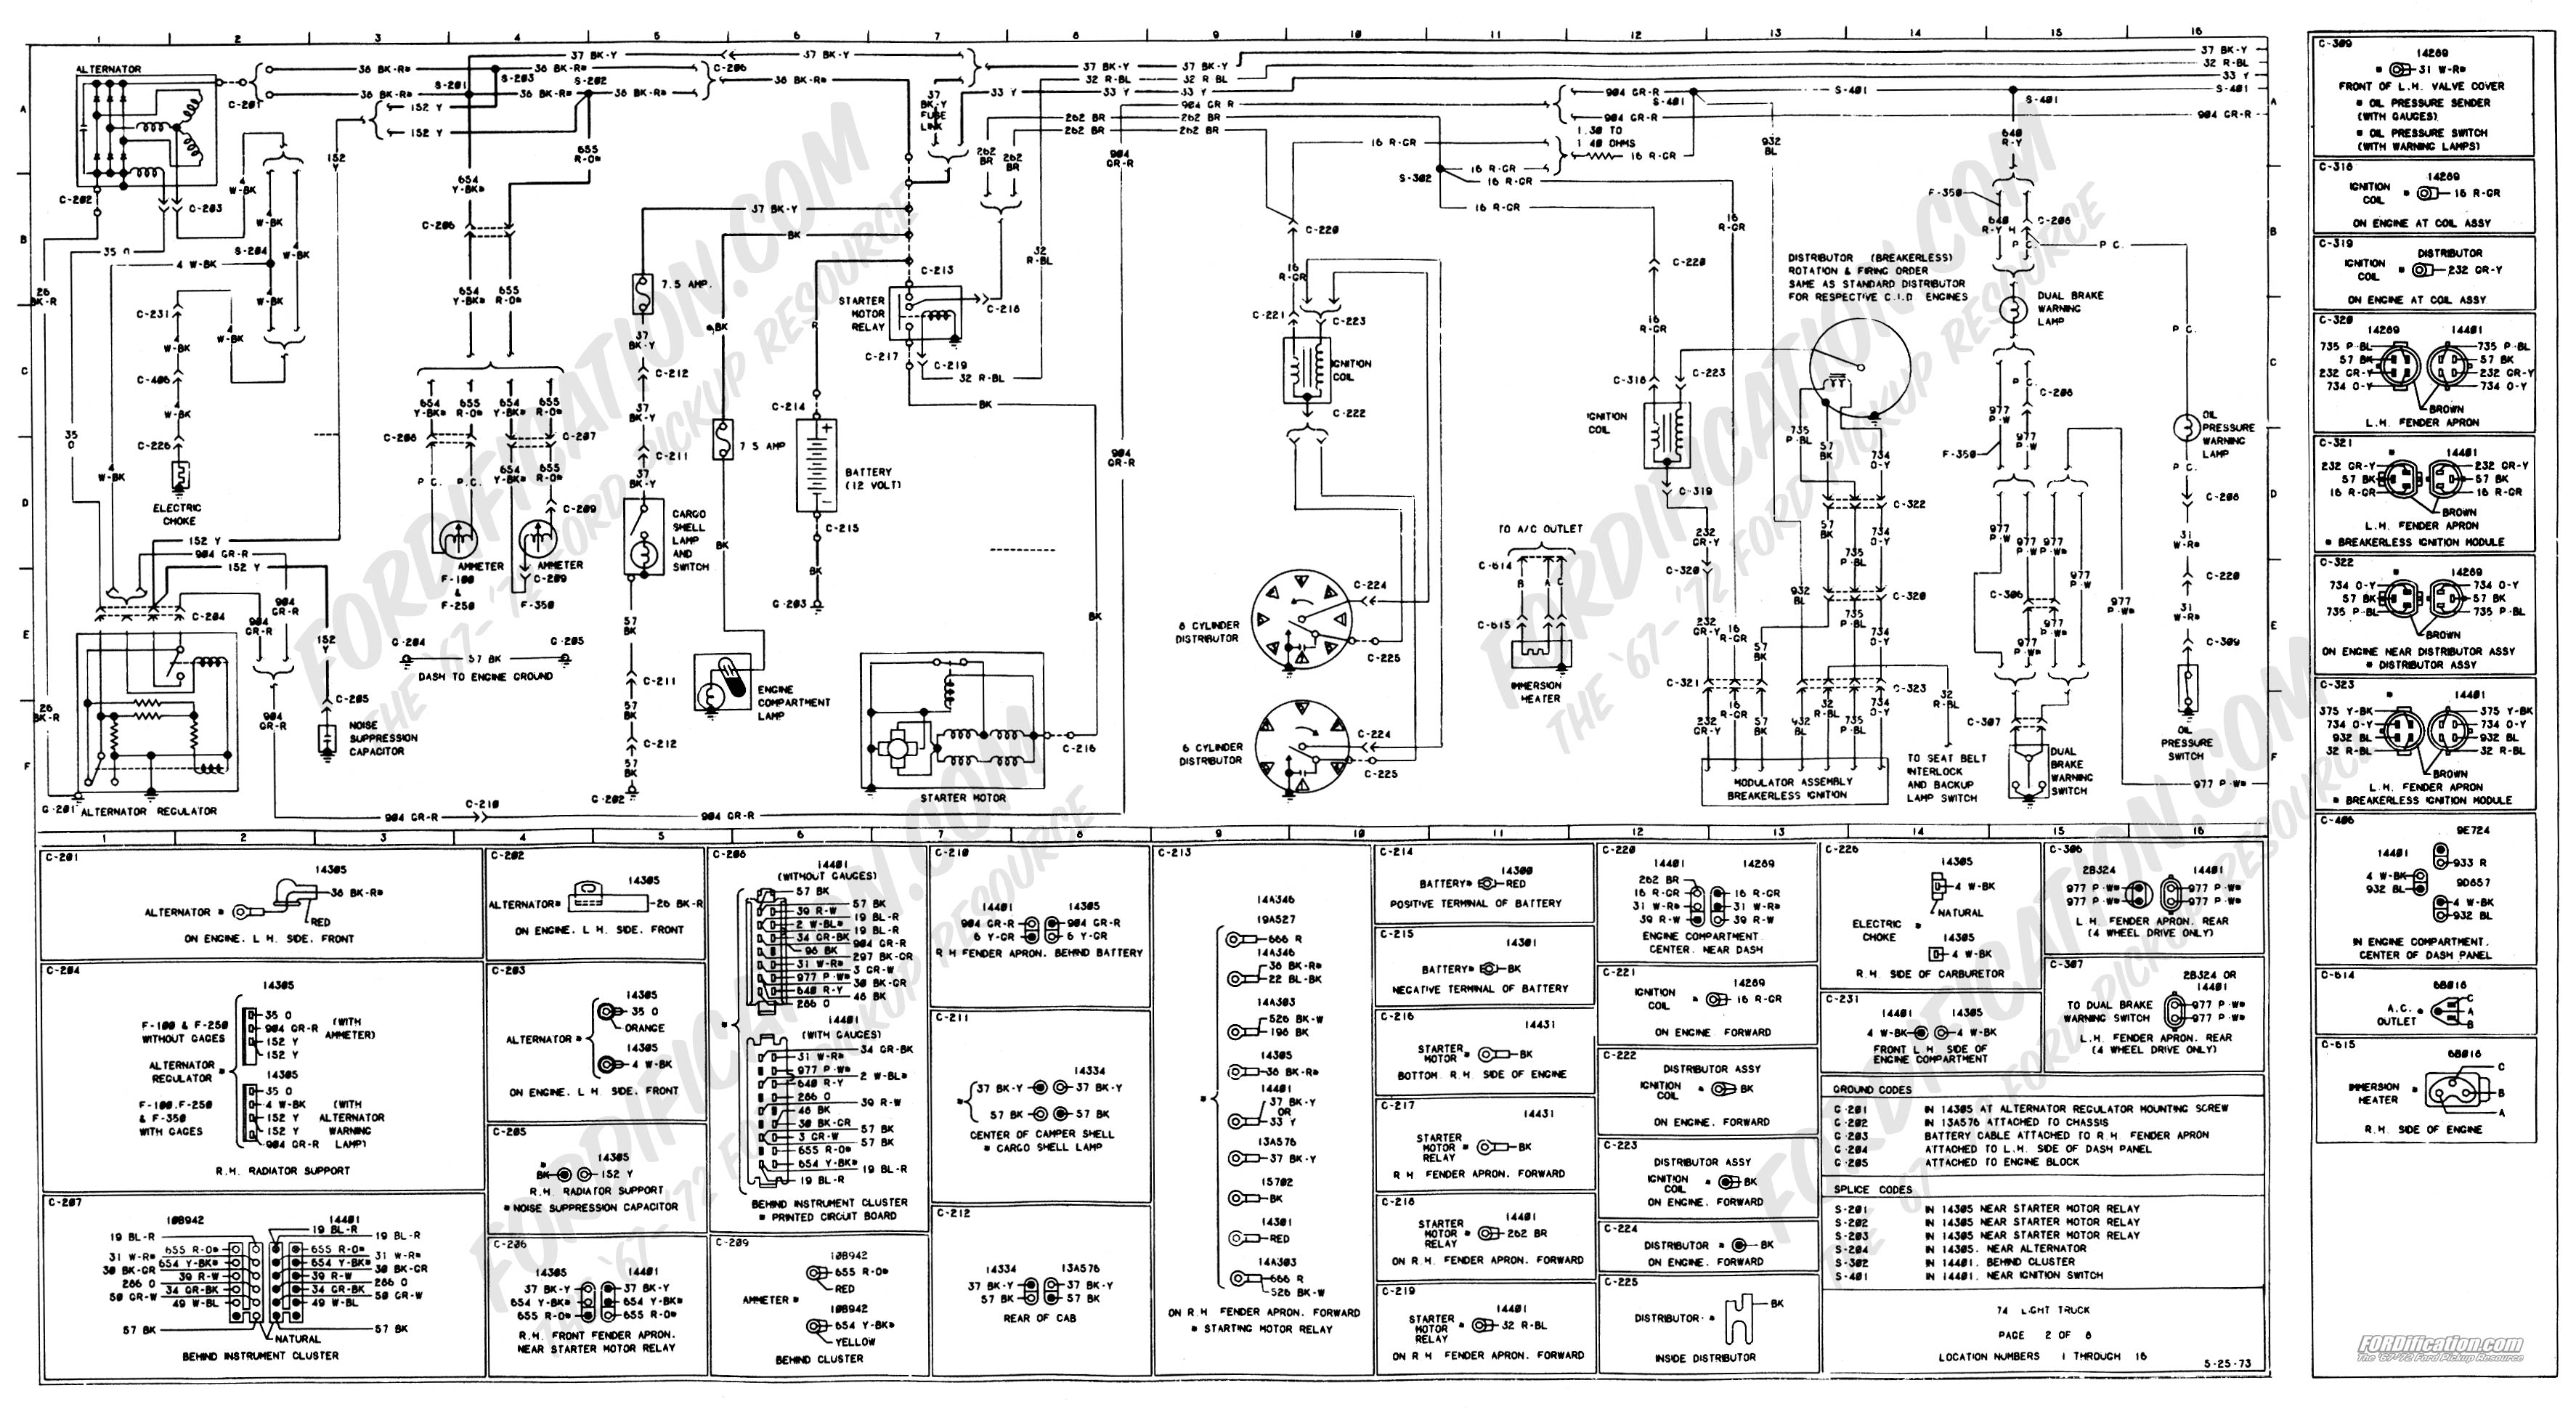 [QMVU_8575]  WRG-0526] 1979 Ford Bronco Fuse Diagram | 1984 Ford Bronco Fuse Diagram |  | hannahcheapgallery060805.mx.tl